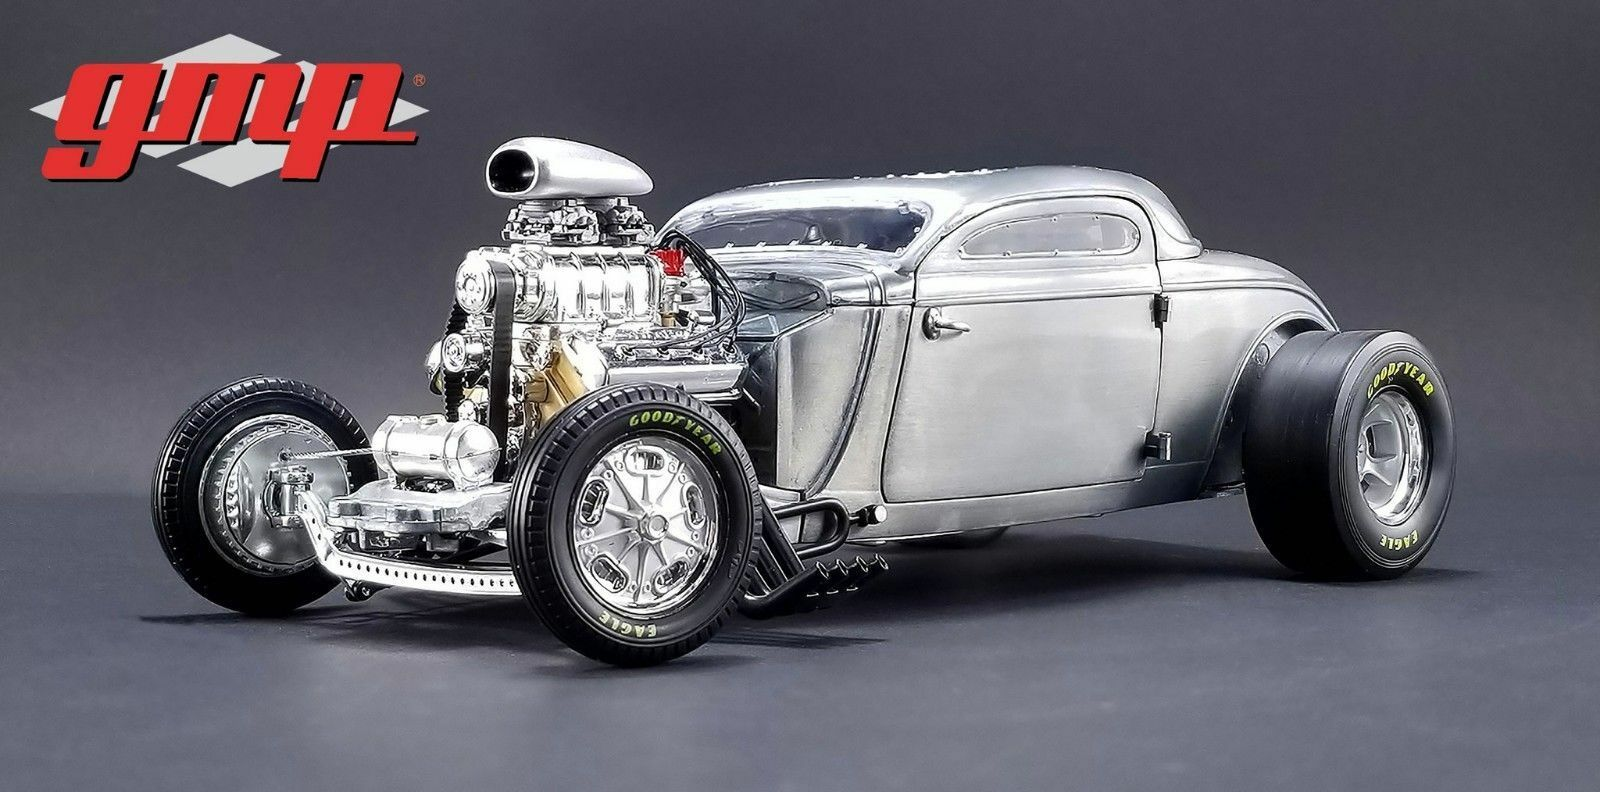 1 18 Gmp  18800 - 1934 Blown Alterouge Coupé Raw Steel Southern Vitesse & Marine